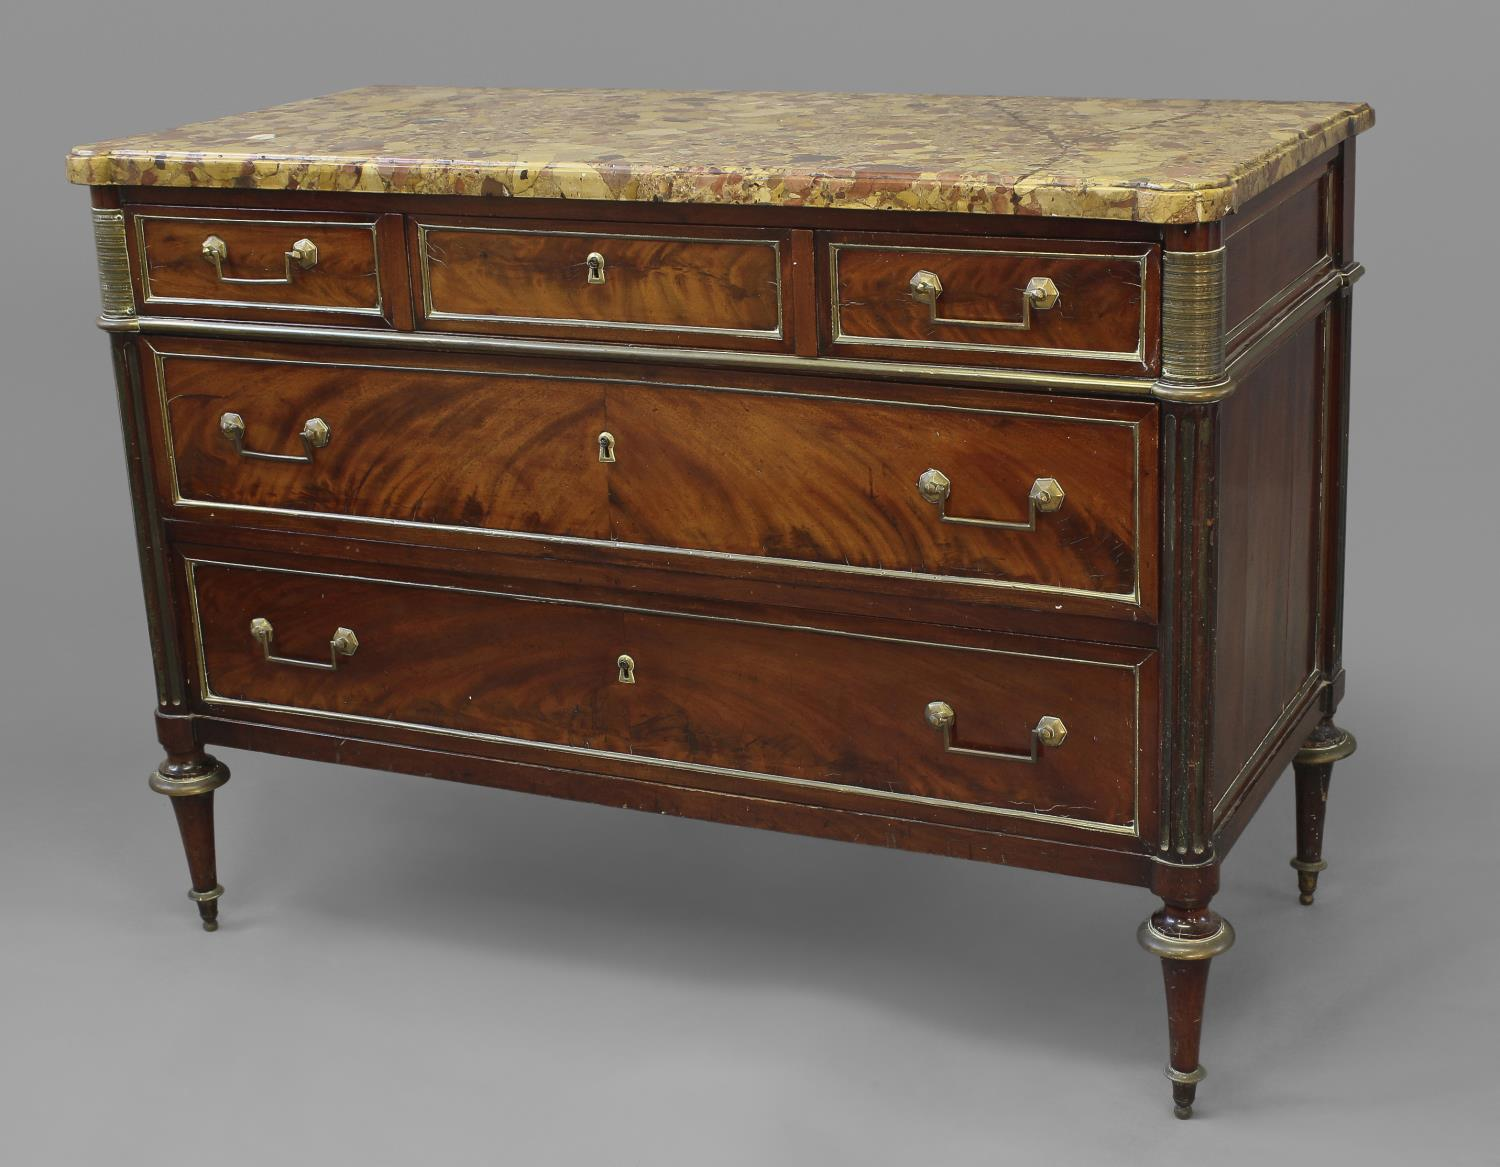 A LOUIS XVI MAHOGANY AND BRASS MOUNTED CHEST OF DRAWERS, with a fine variegated marble top with - Image 2 of 2